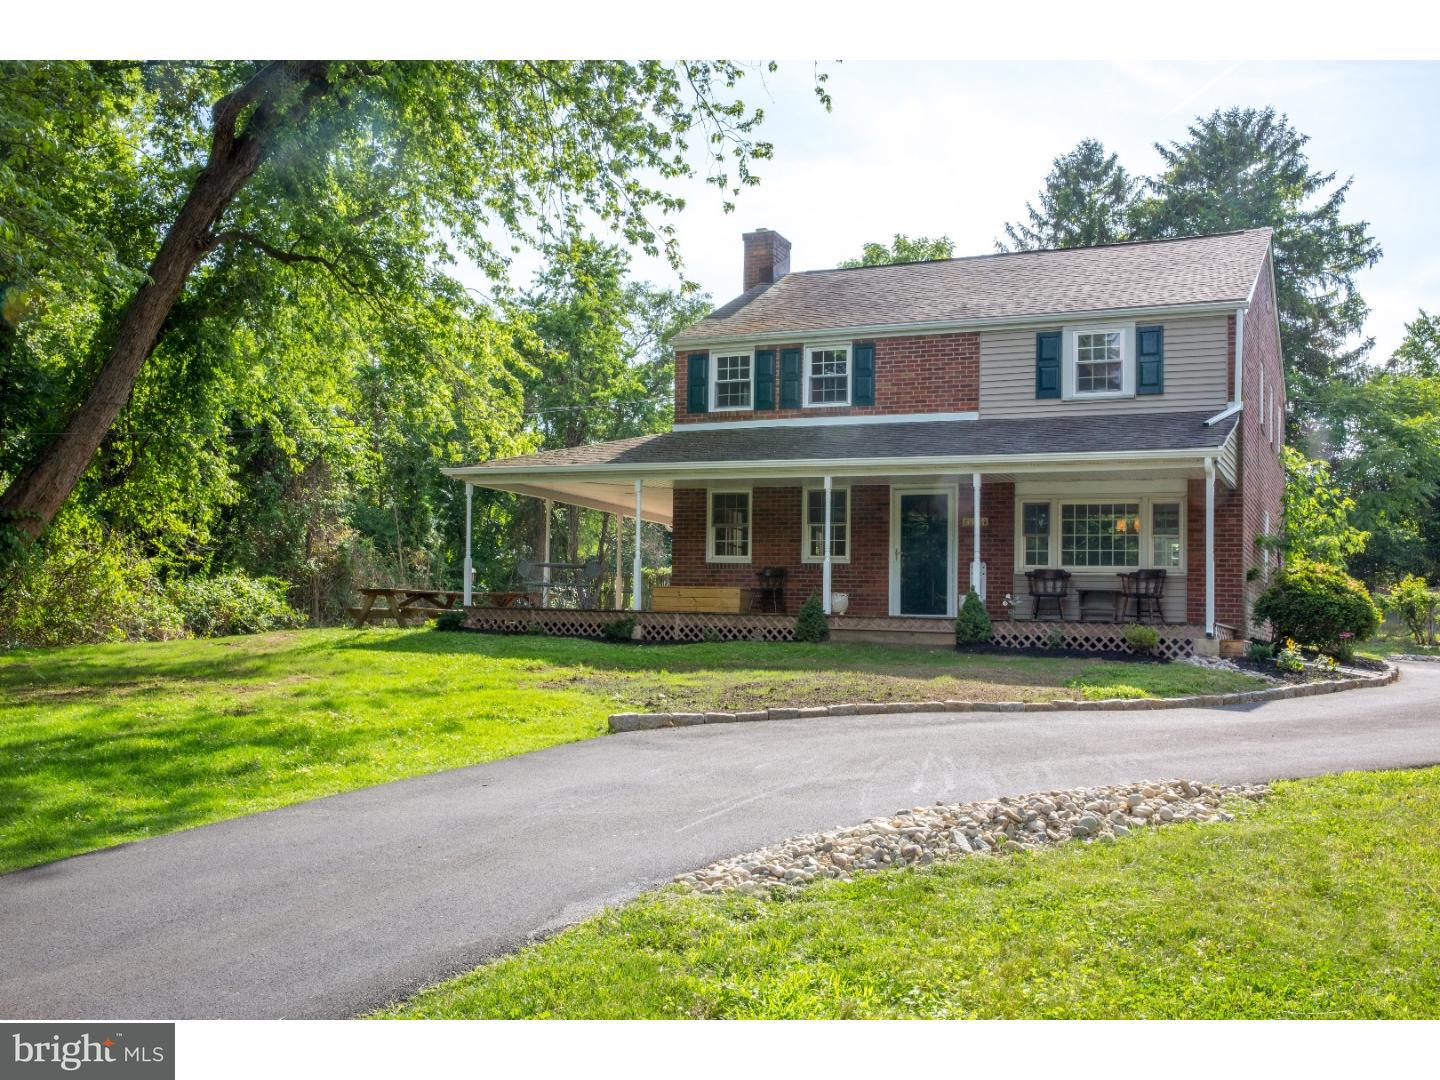 Single Family Home for Rent at 528 S OLD MIDDLETOWN Road Media, Pennsylvania 19063 United States